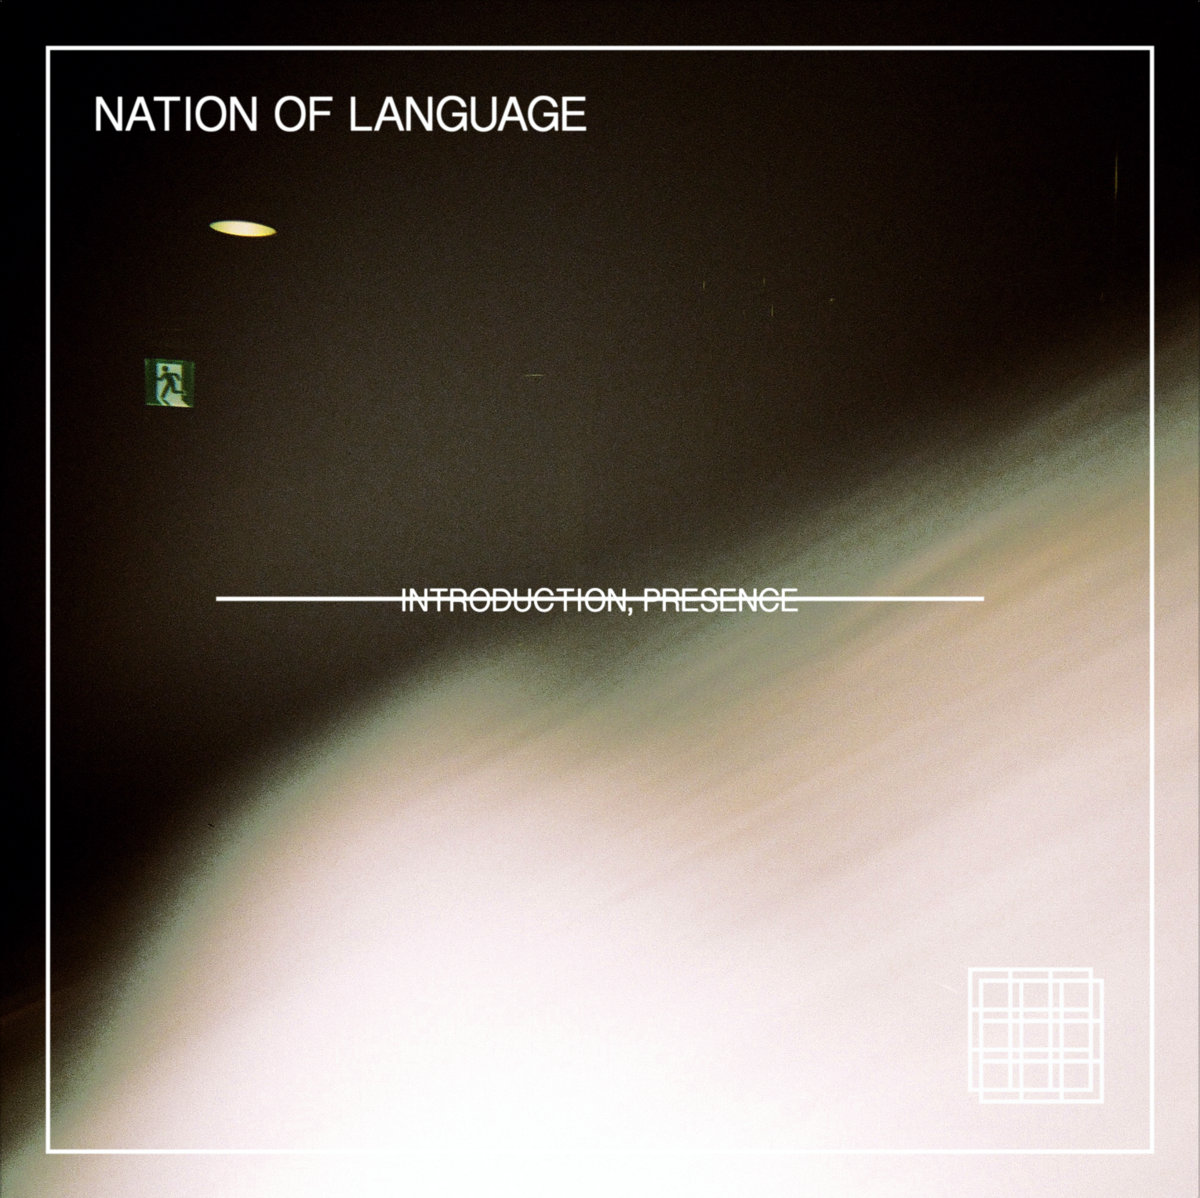 nation of language introduction presence альбом рецензия 2020